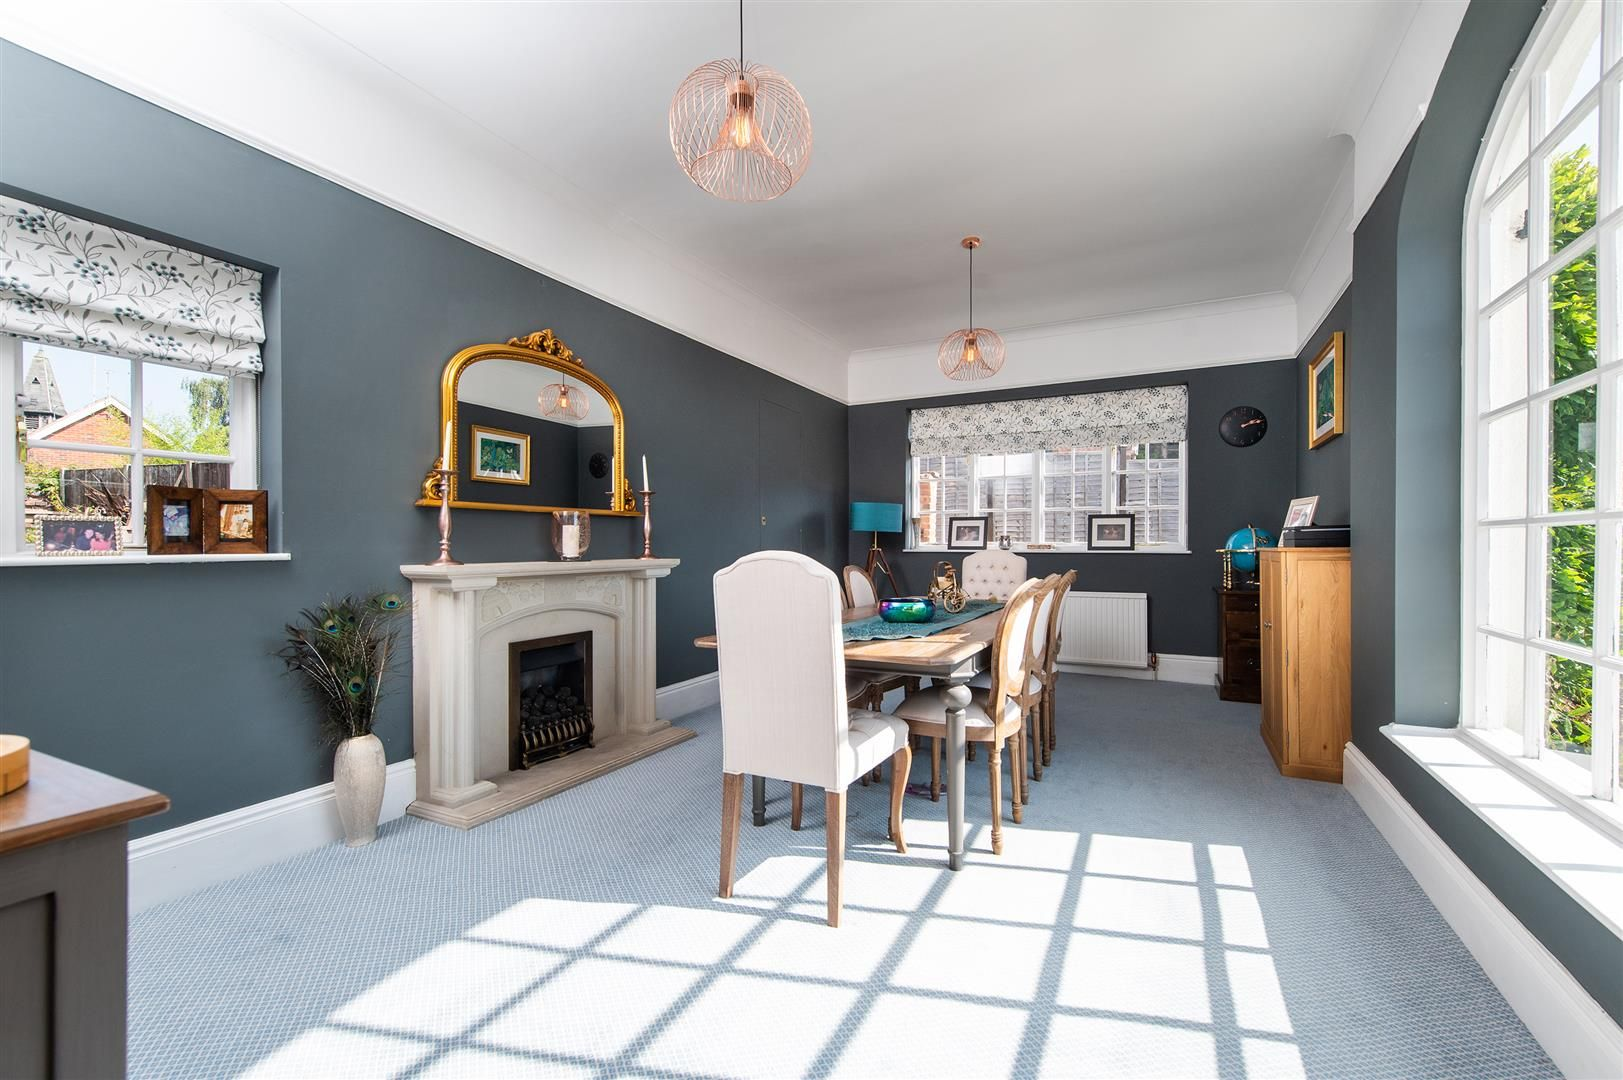 4 bed detached for sale in Blakedown  - Property Image 16